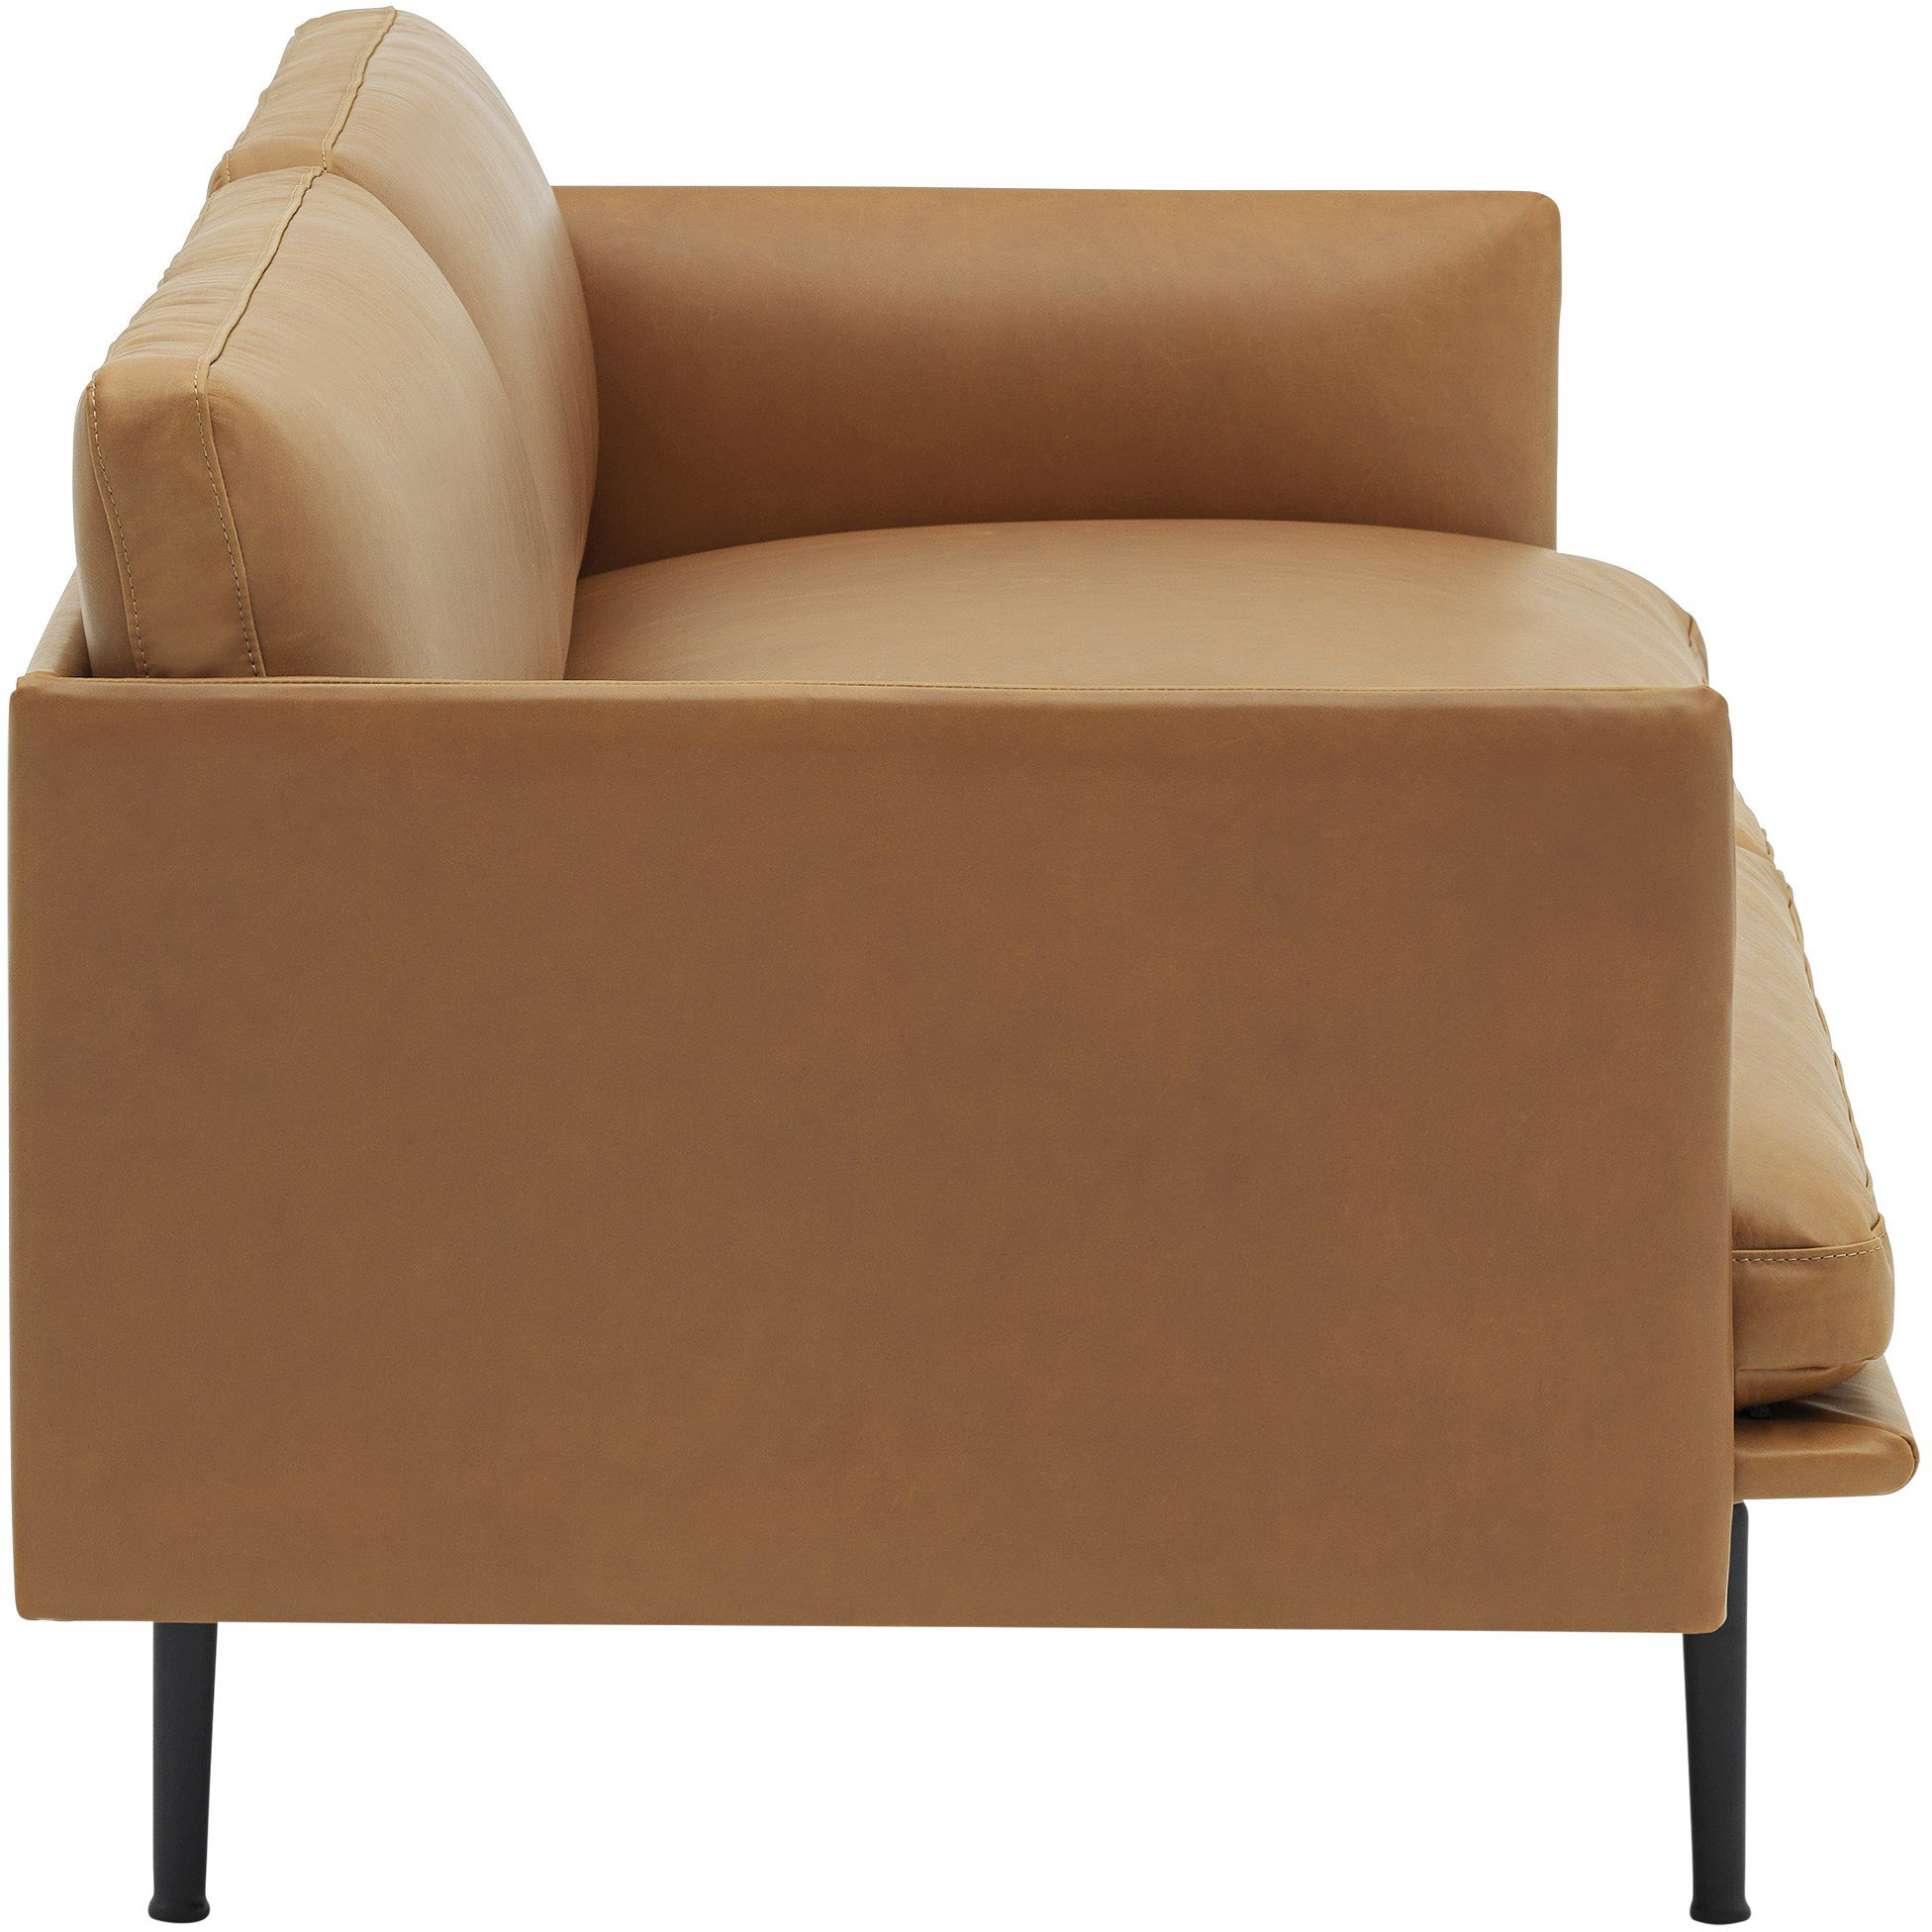 Sofa Outline 2-seater Black/ Refine Leather Cognac by Anderssen & Voll for Muuto - 496391 - photo